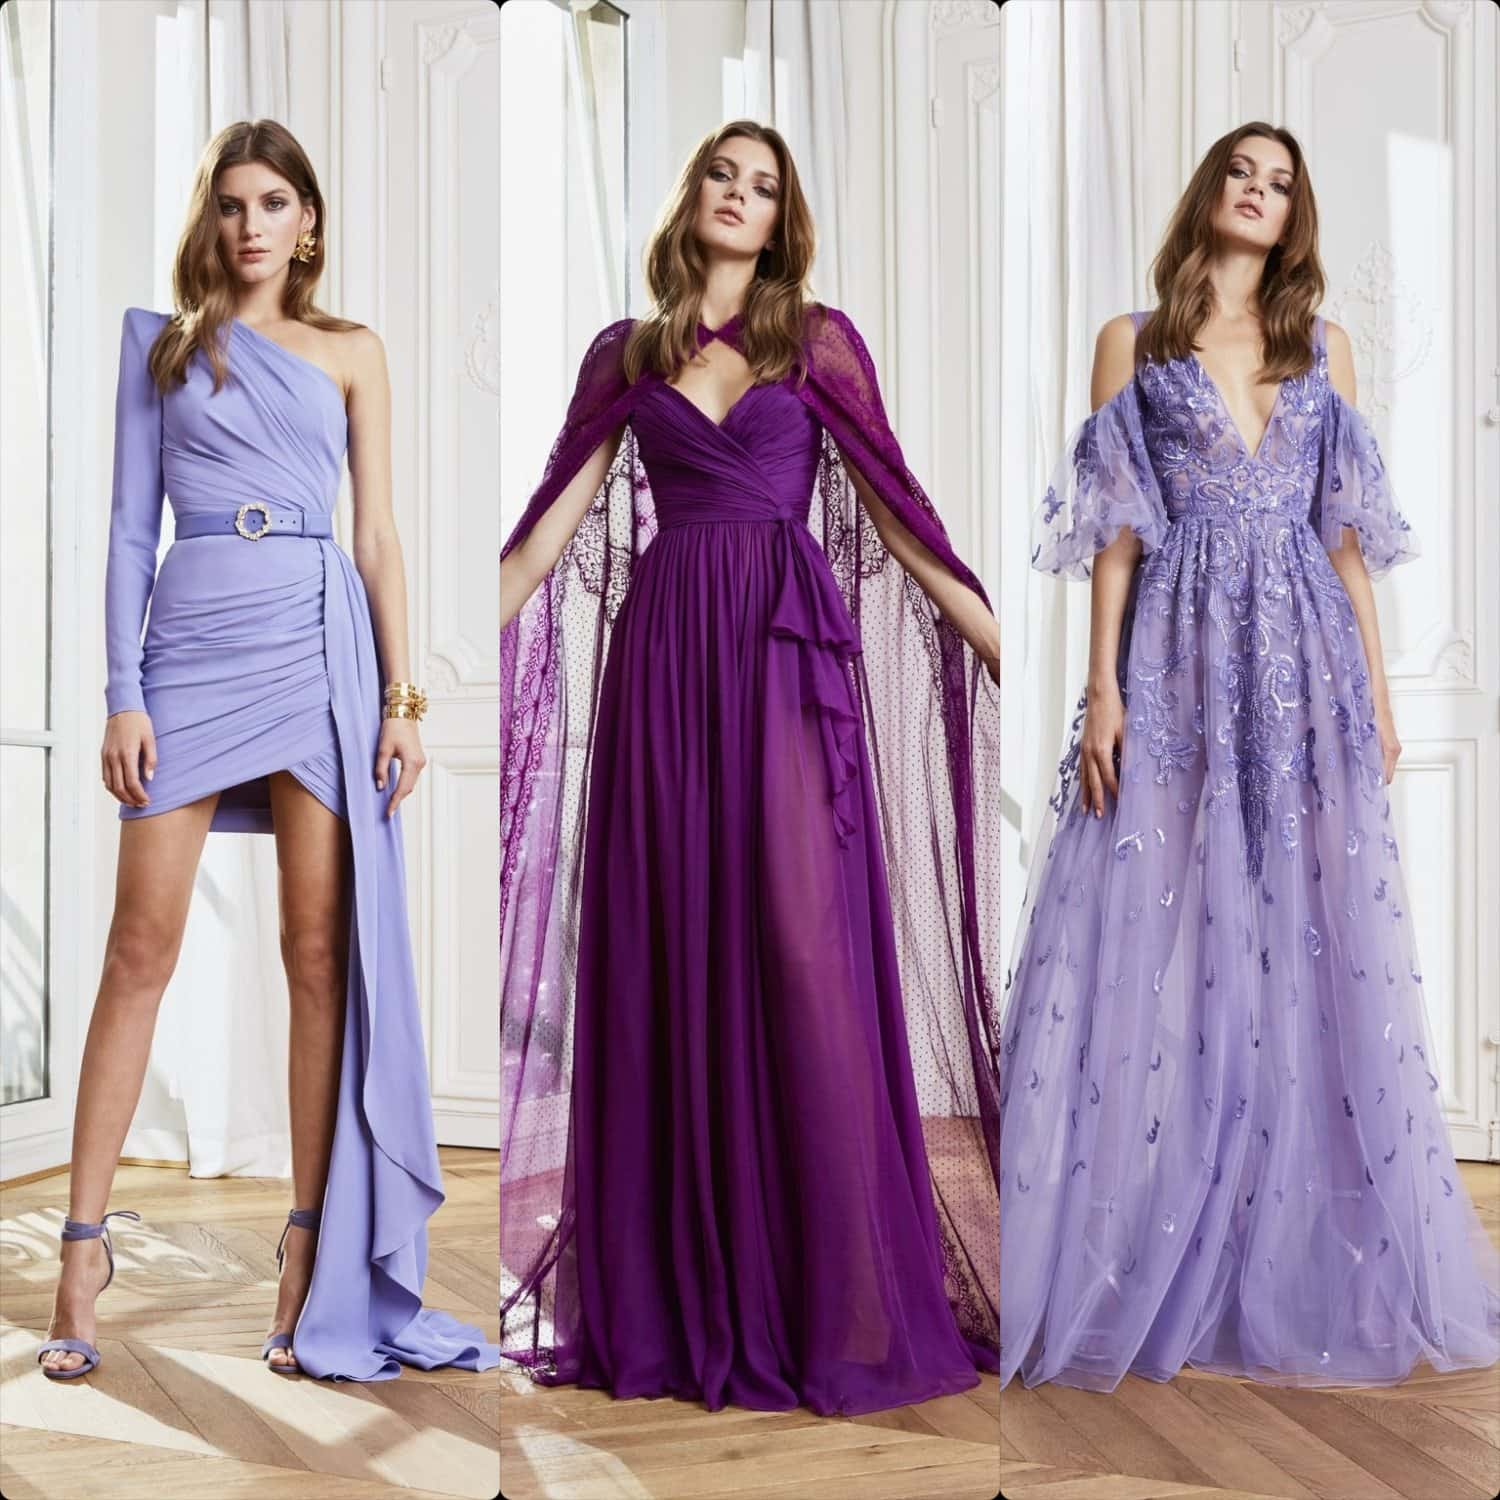 Zuhair Murad Fall-Winter 2020-2021 Paris by RUNWAY MAGAZINE